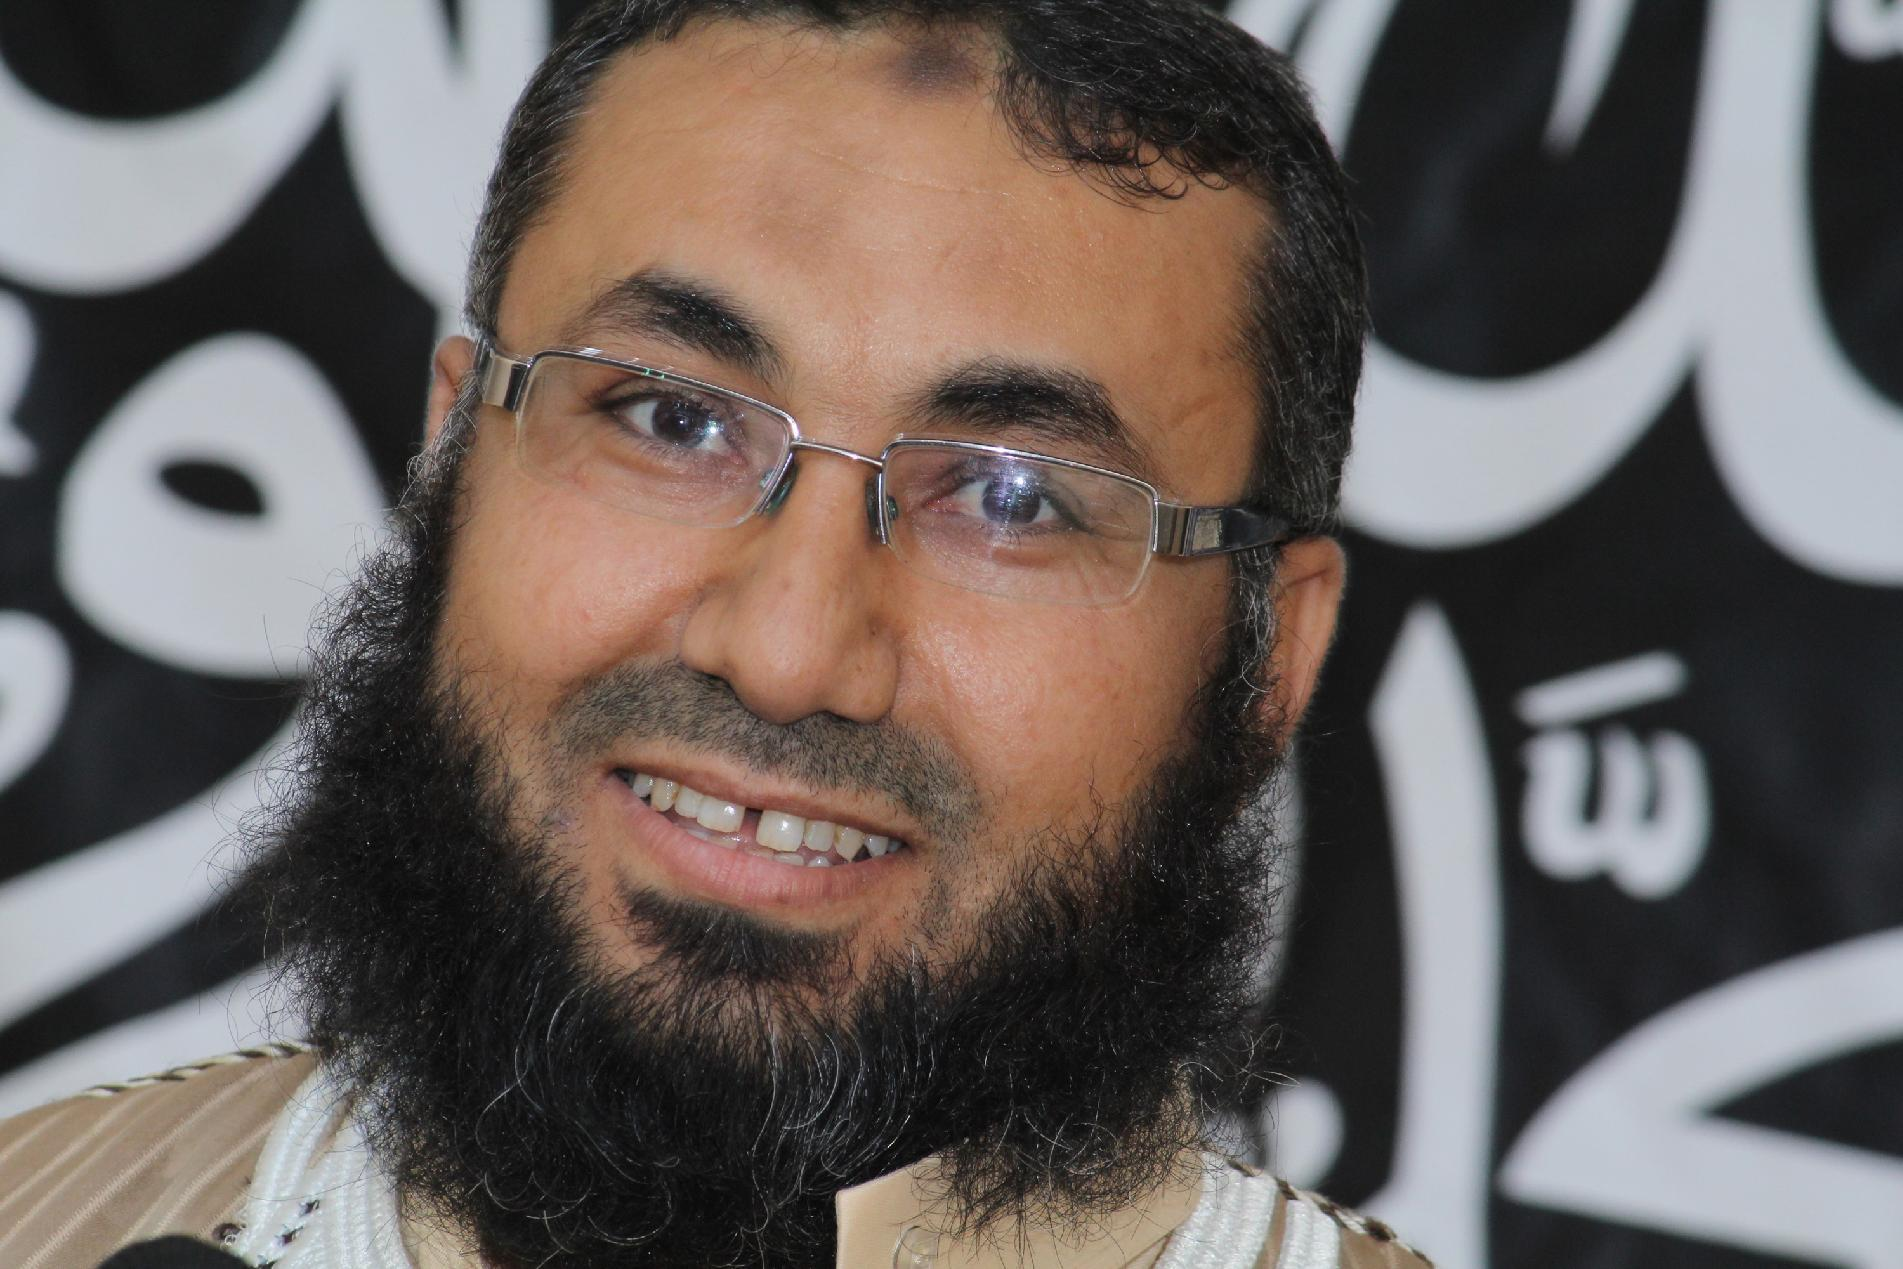 Libya's Ansar al-Sharia chief dead: Islamist websites